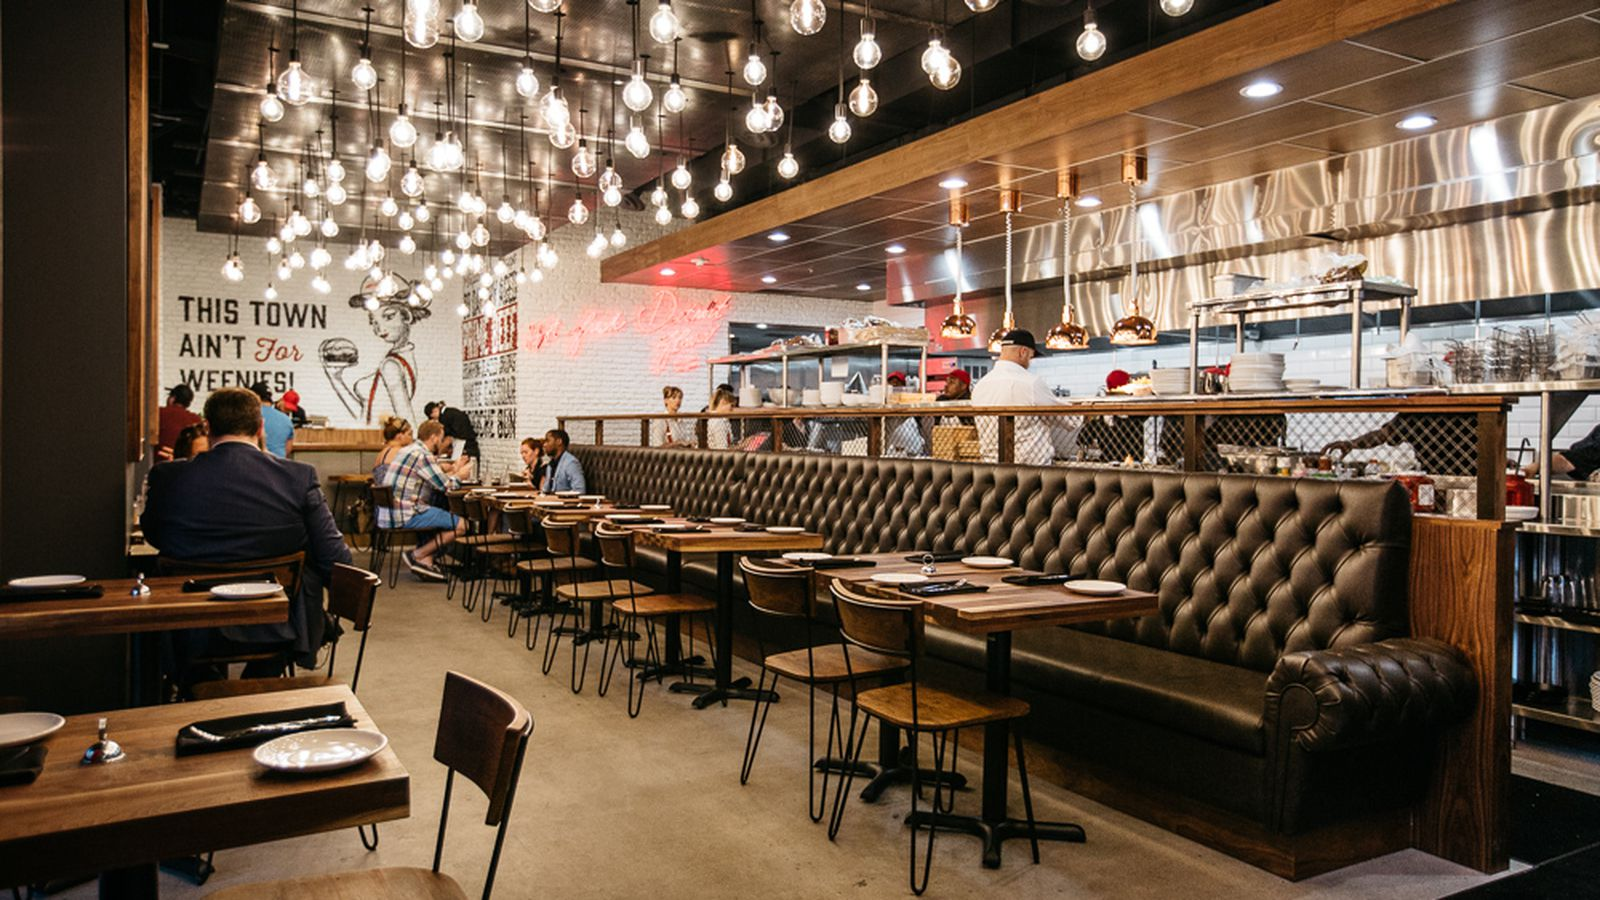 The Early Word On Glitzy Downtown Newcomer Townhouse